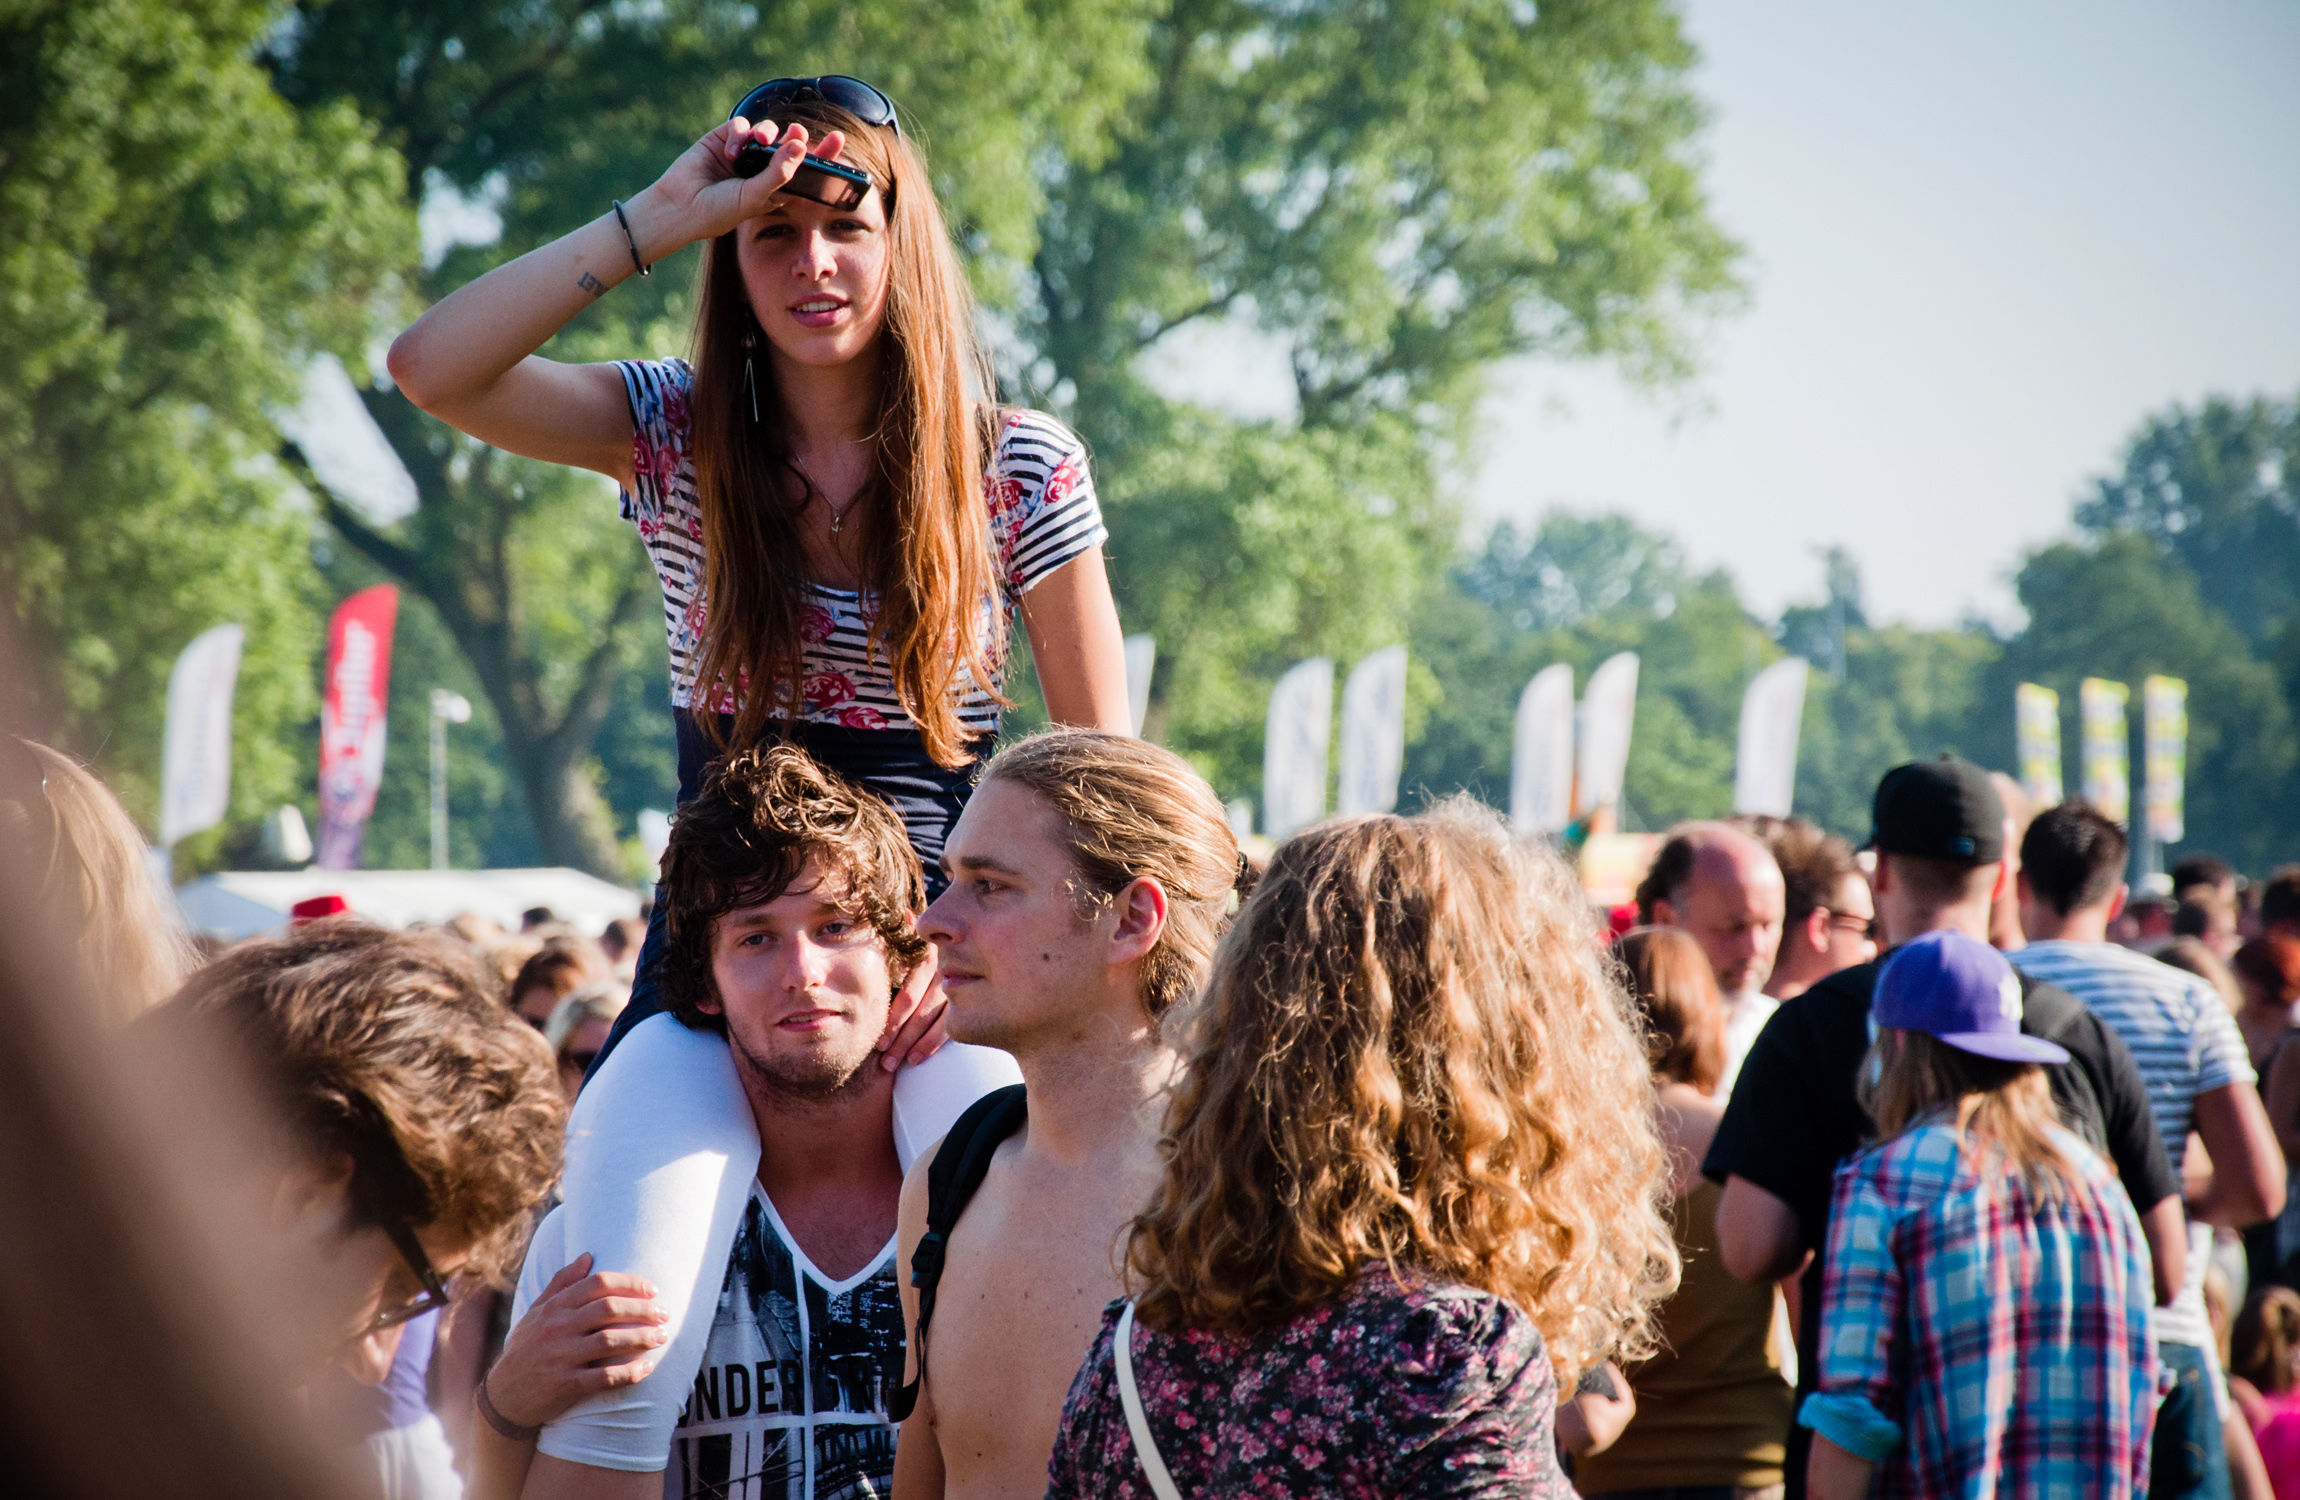 Crowd of people, Boy, People, Watching, Standing, HQ Photo